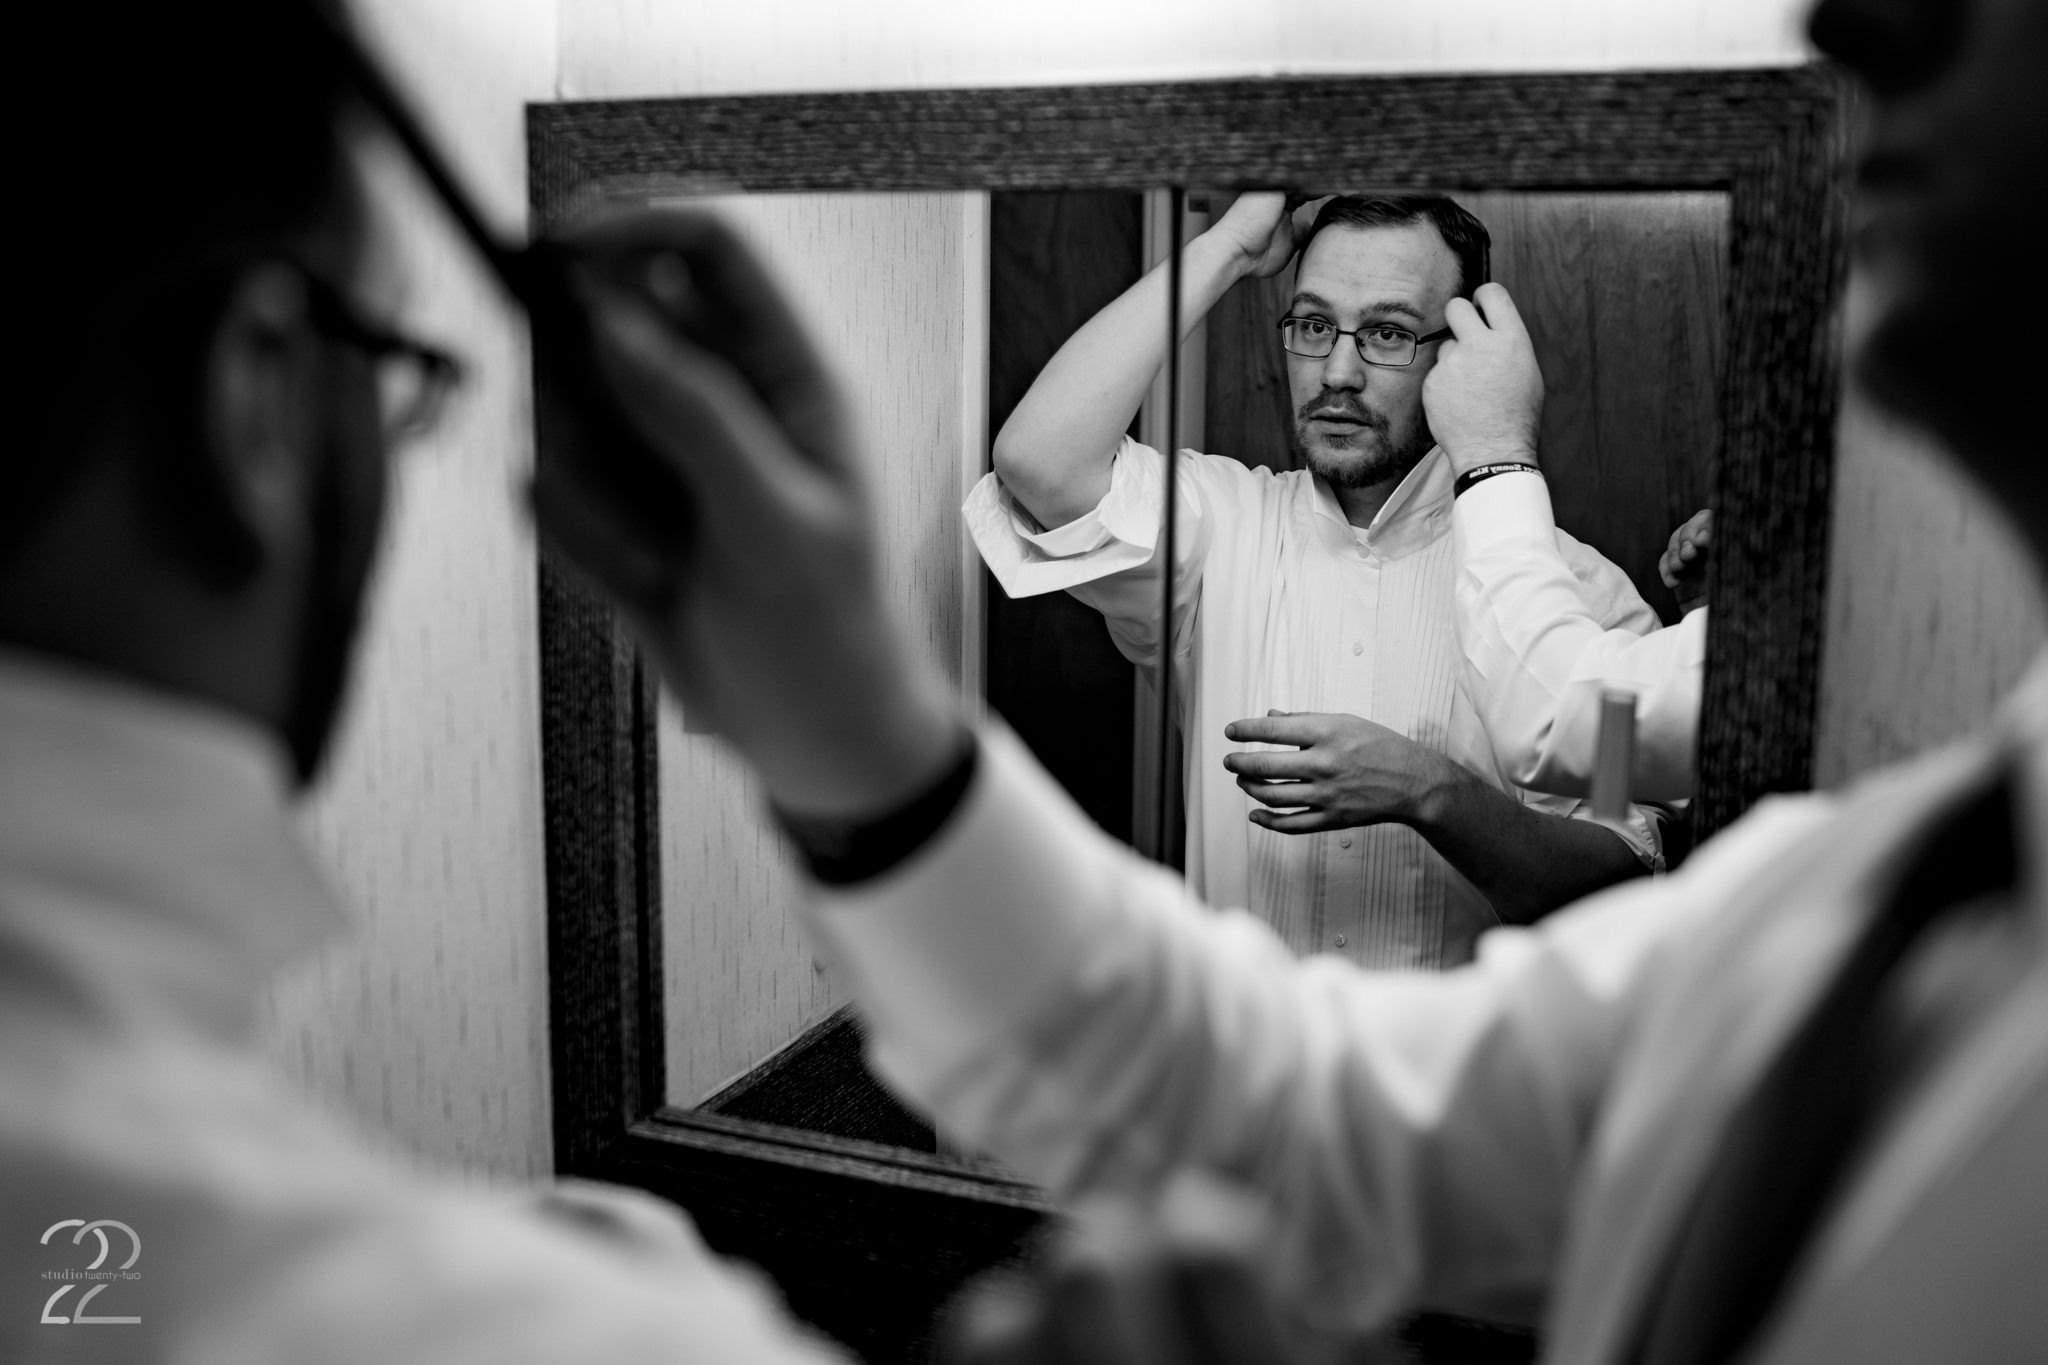 Choosing to get ready in their Cincinnati home, Nick and his groomsmen nail down the perfect wedding day look for him. Getting ready photos are some of my favorites from the wedding day, because it provides a